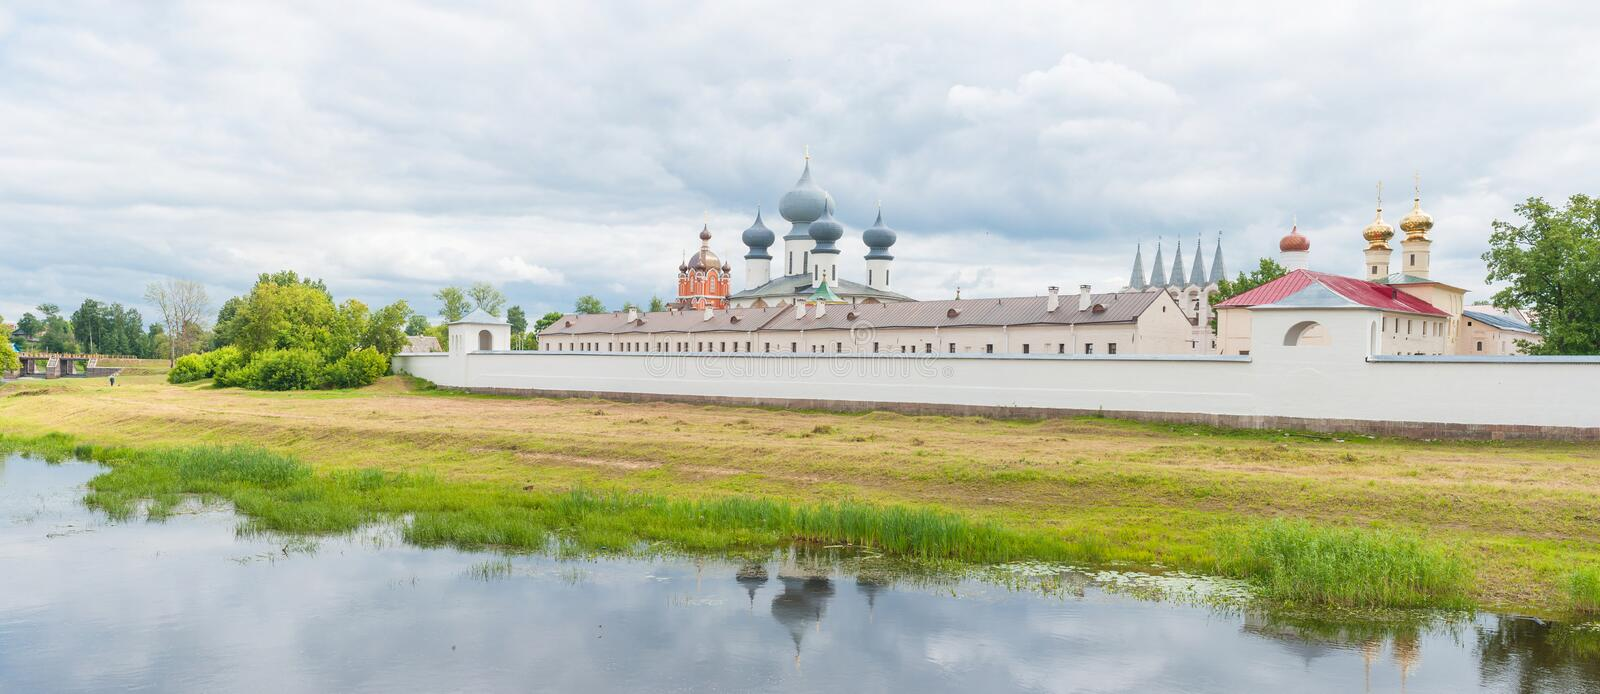 Tikhvin Assumption Monastery. View of the Tikhvin Assumption Monastery in Tikhvin, Russia, with the Tikhvinka river in the foreground stock photography